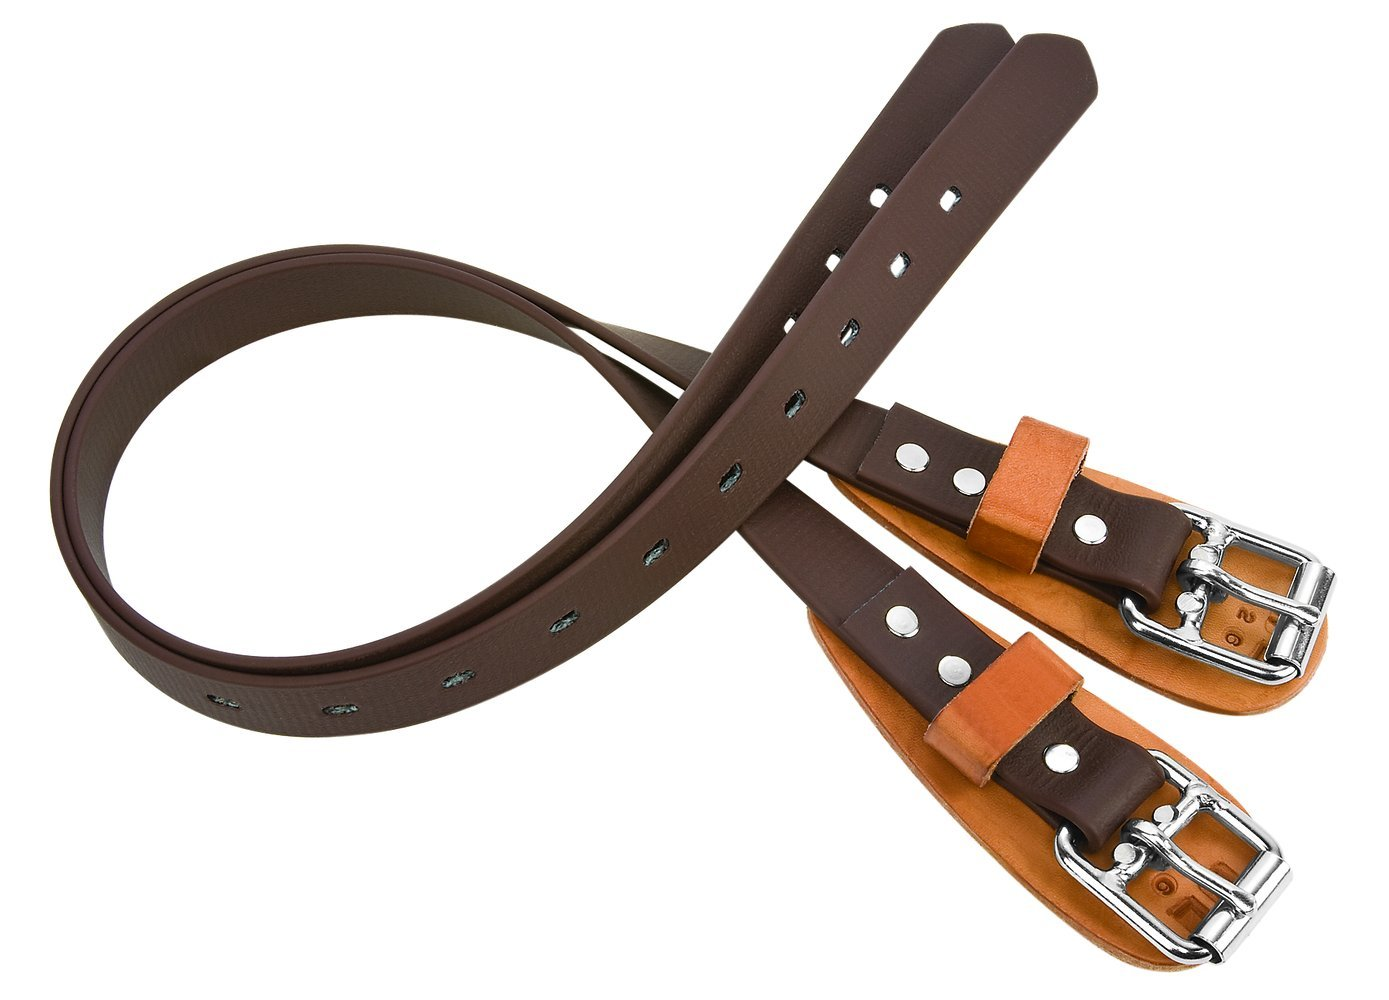 Weaver Arborist Upper Climber Straps by Weaver Leather